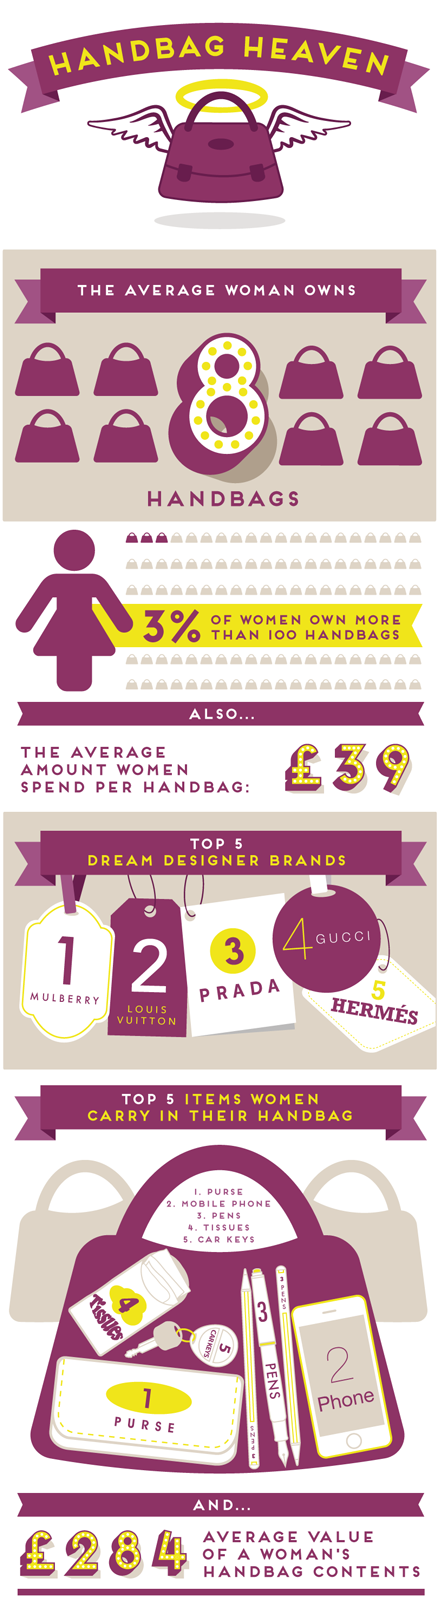 Handbag Heaven Infographic